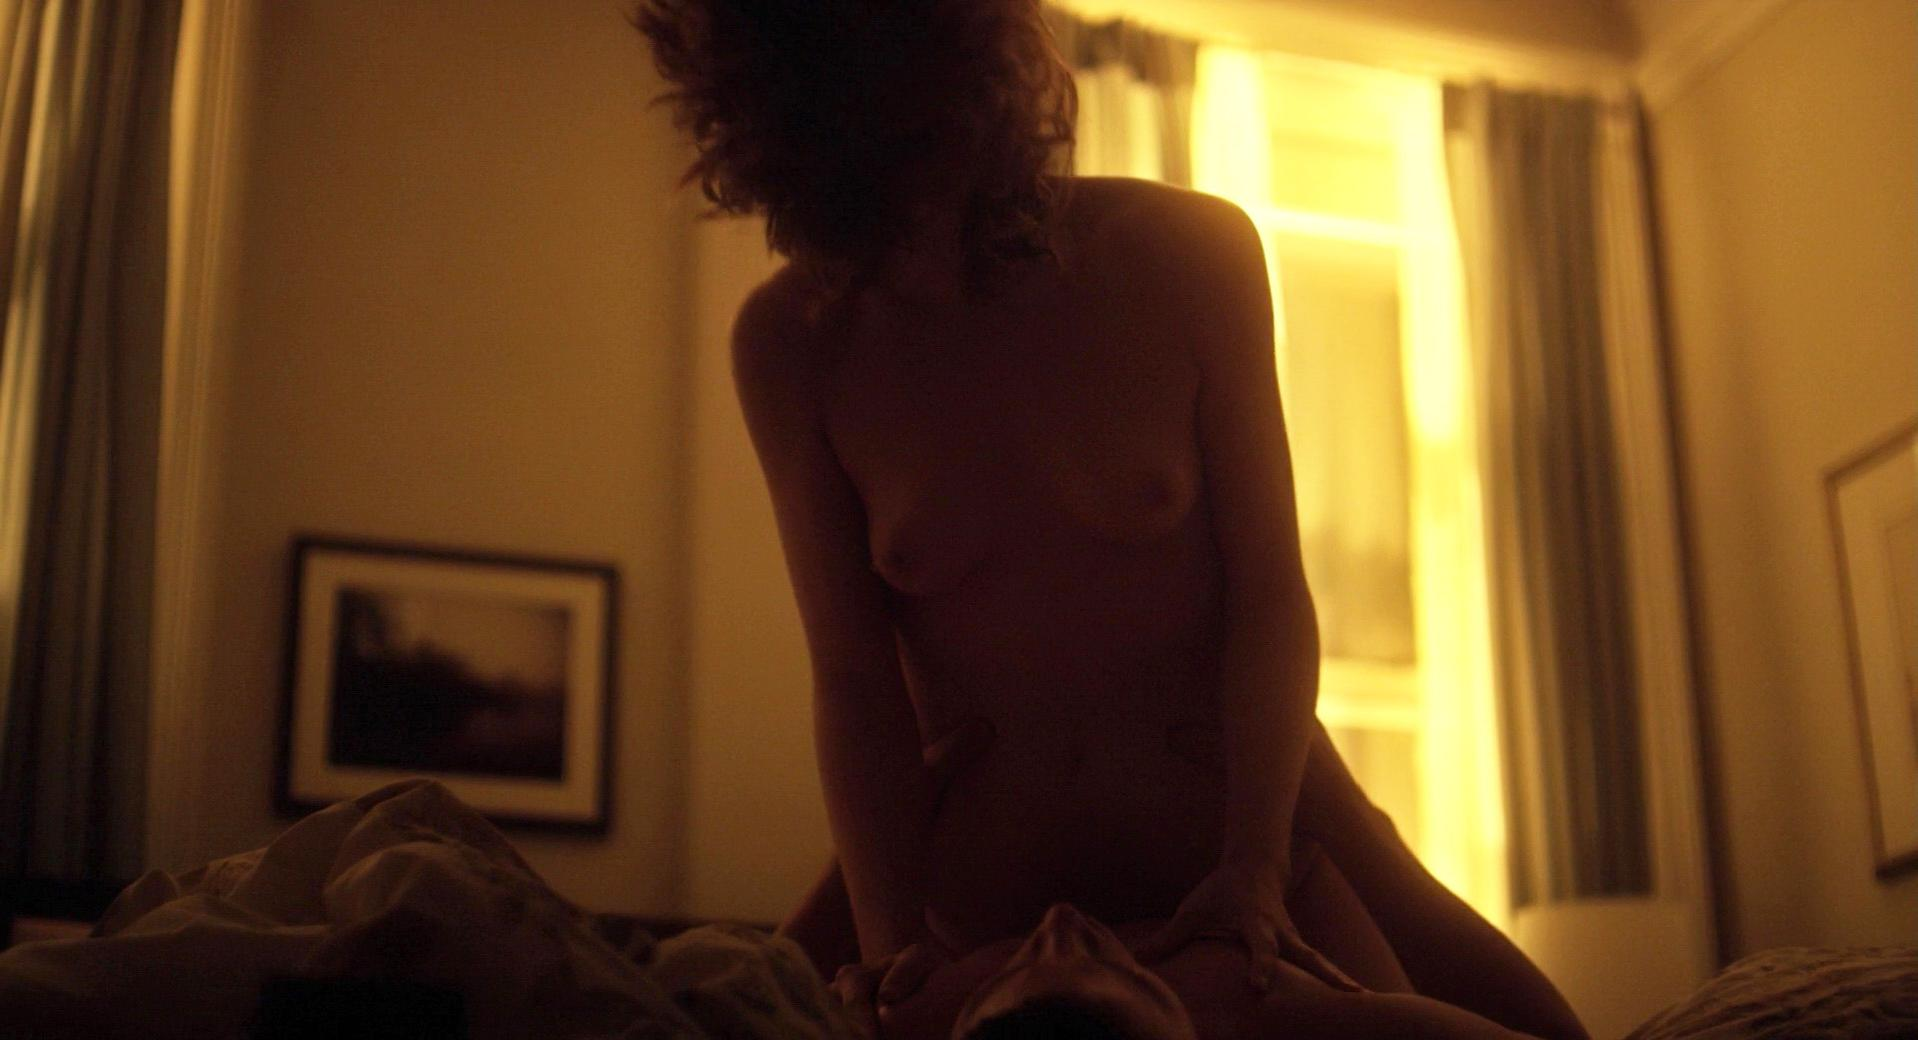 Rooney Mara nude, Catherine Zeta-Jones sexy - Side effects (2012)